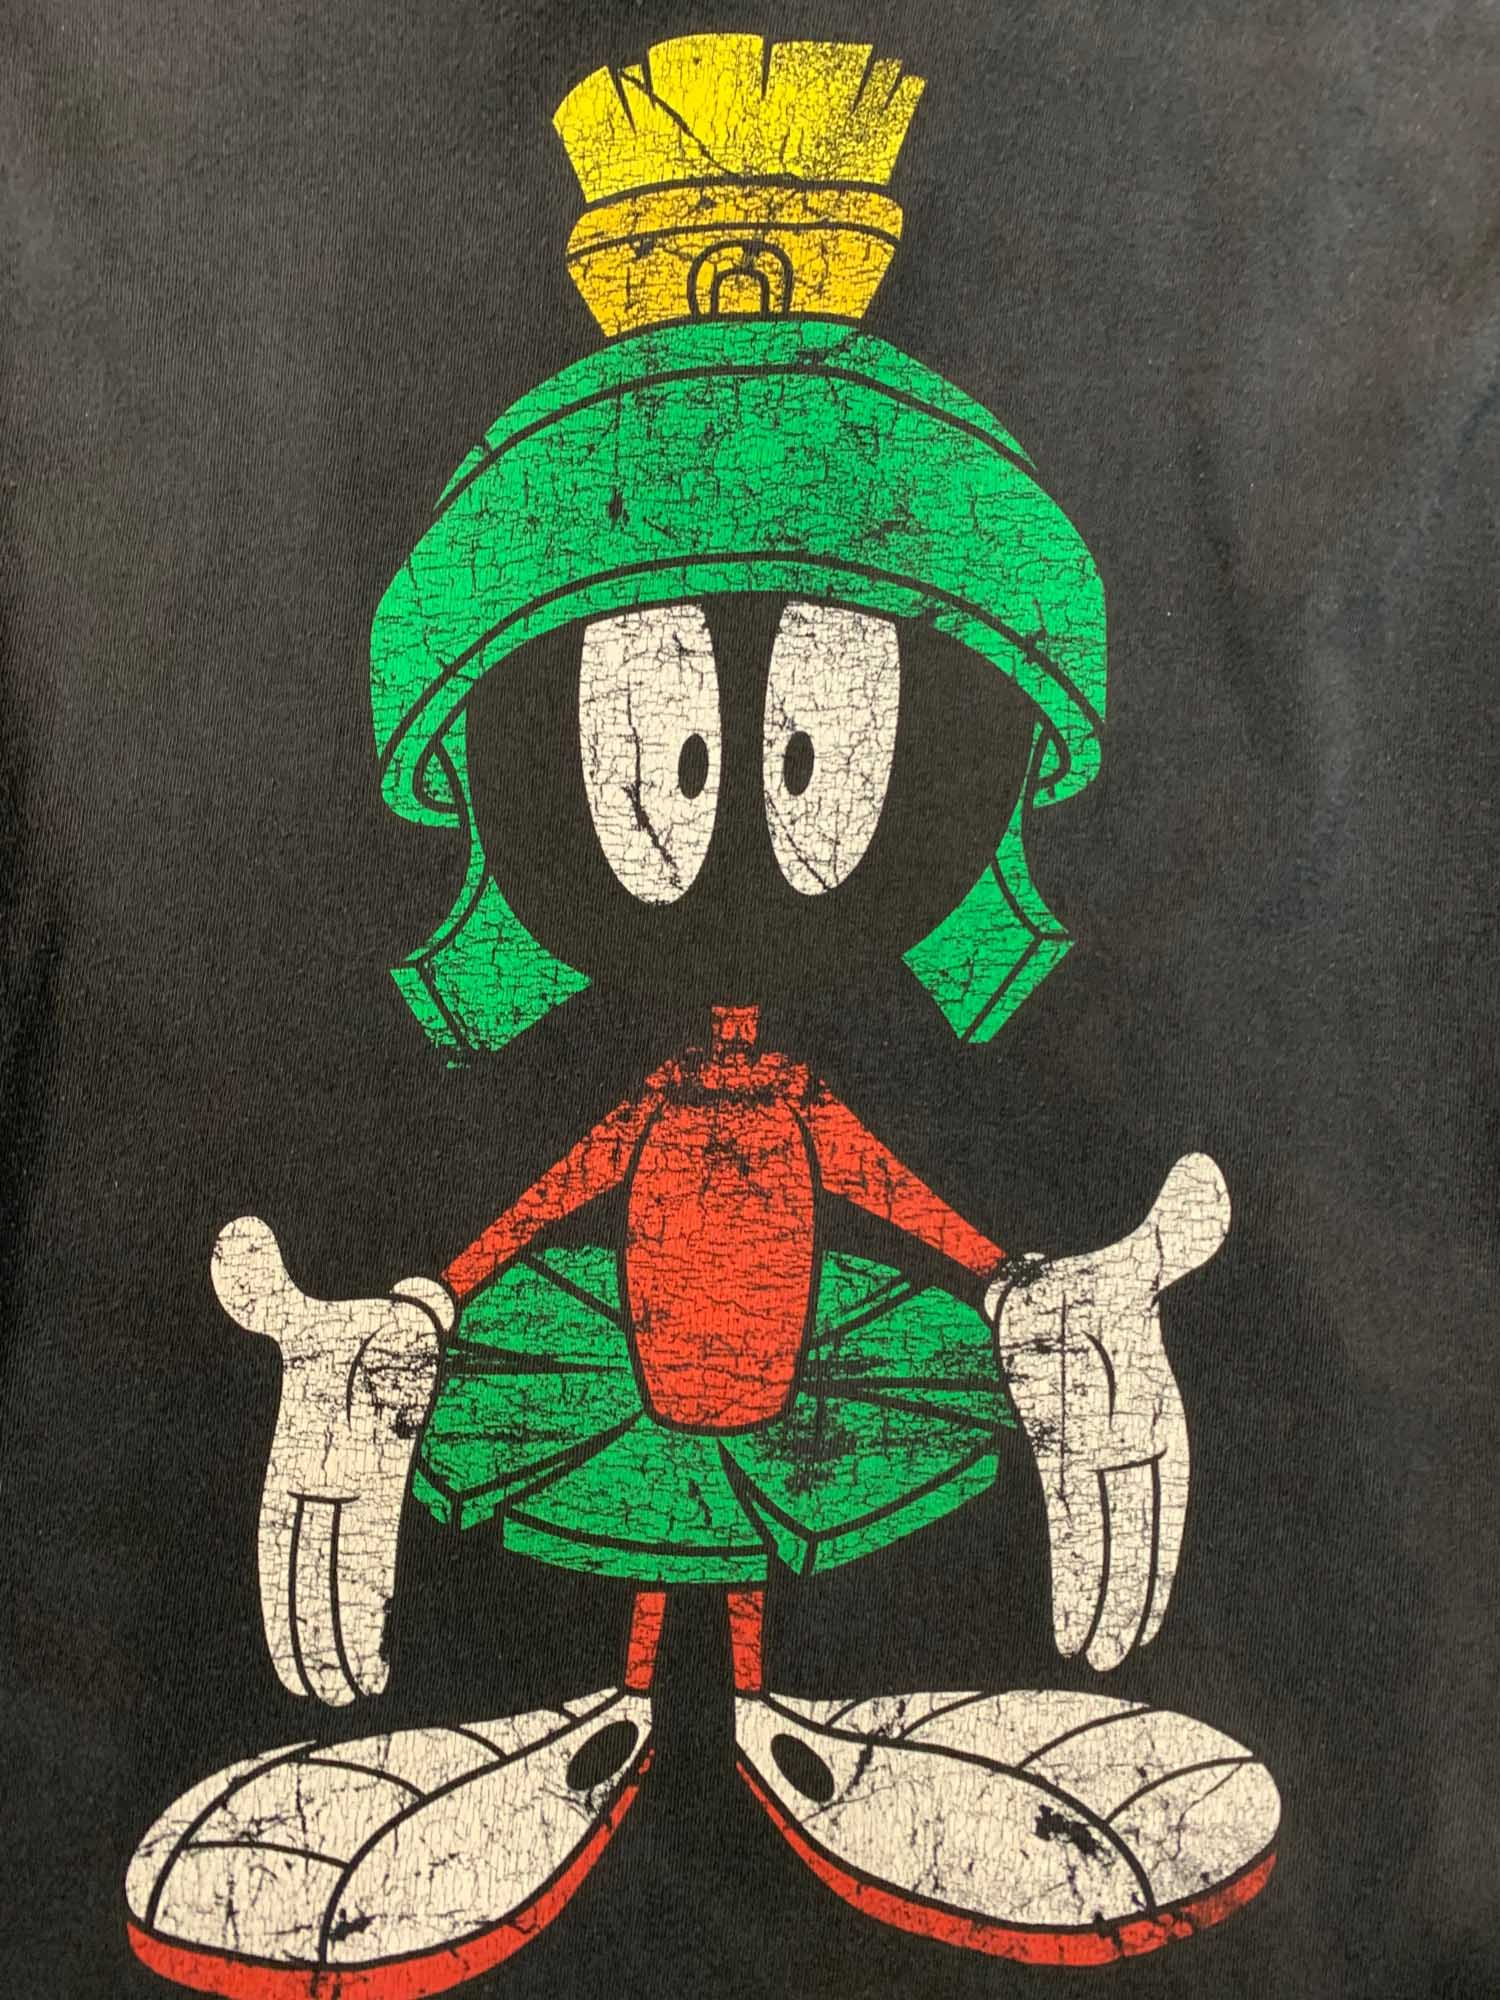 VINTAGE MARVIN THE MARTIAN TEE